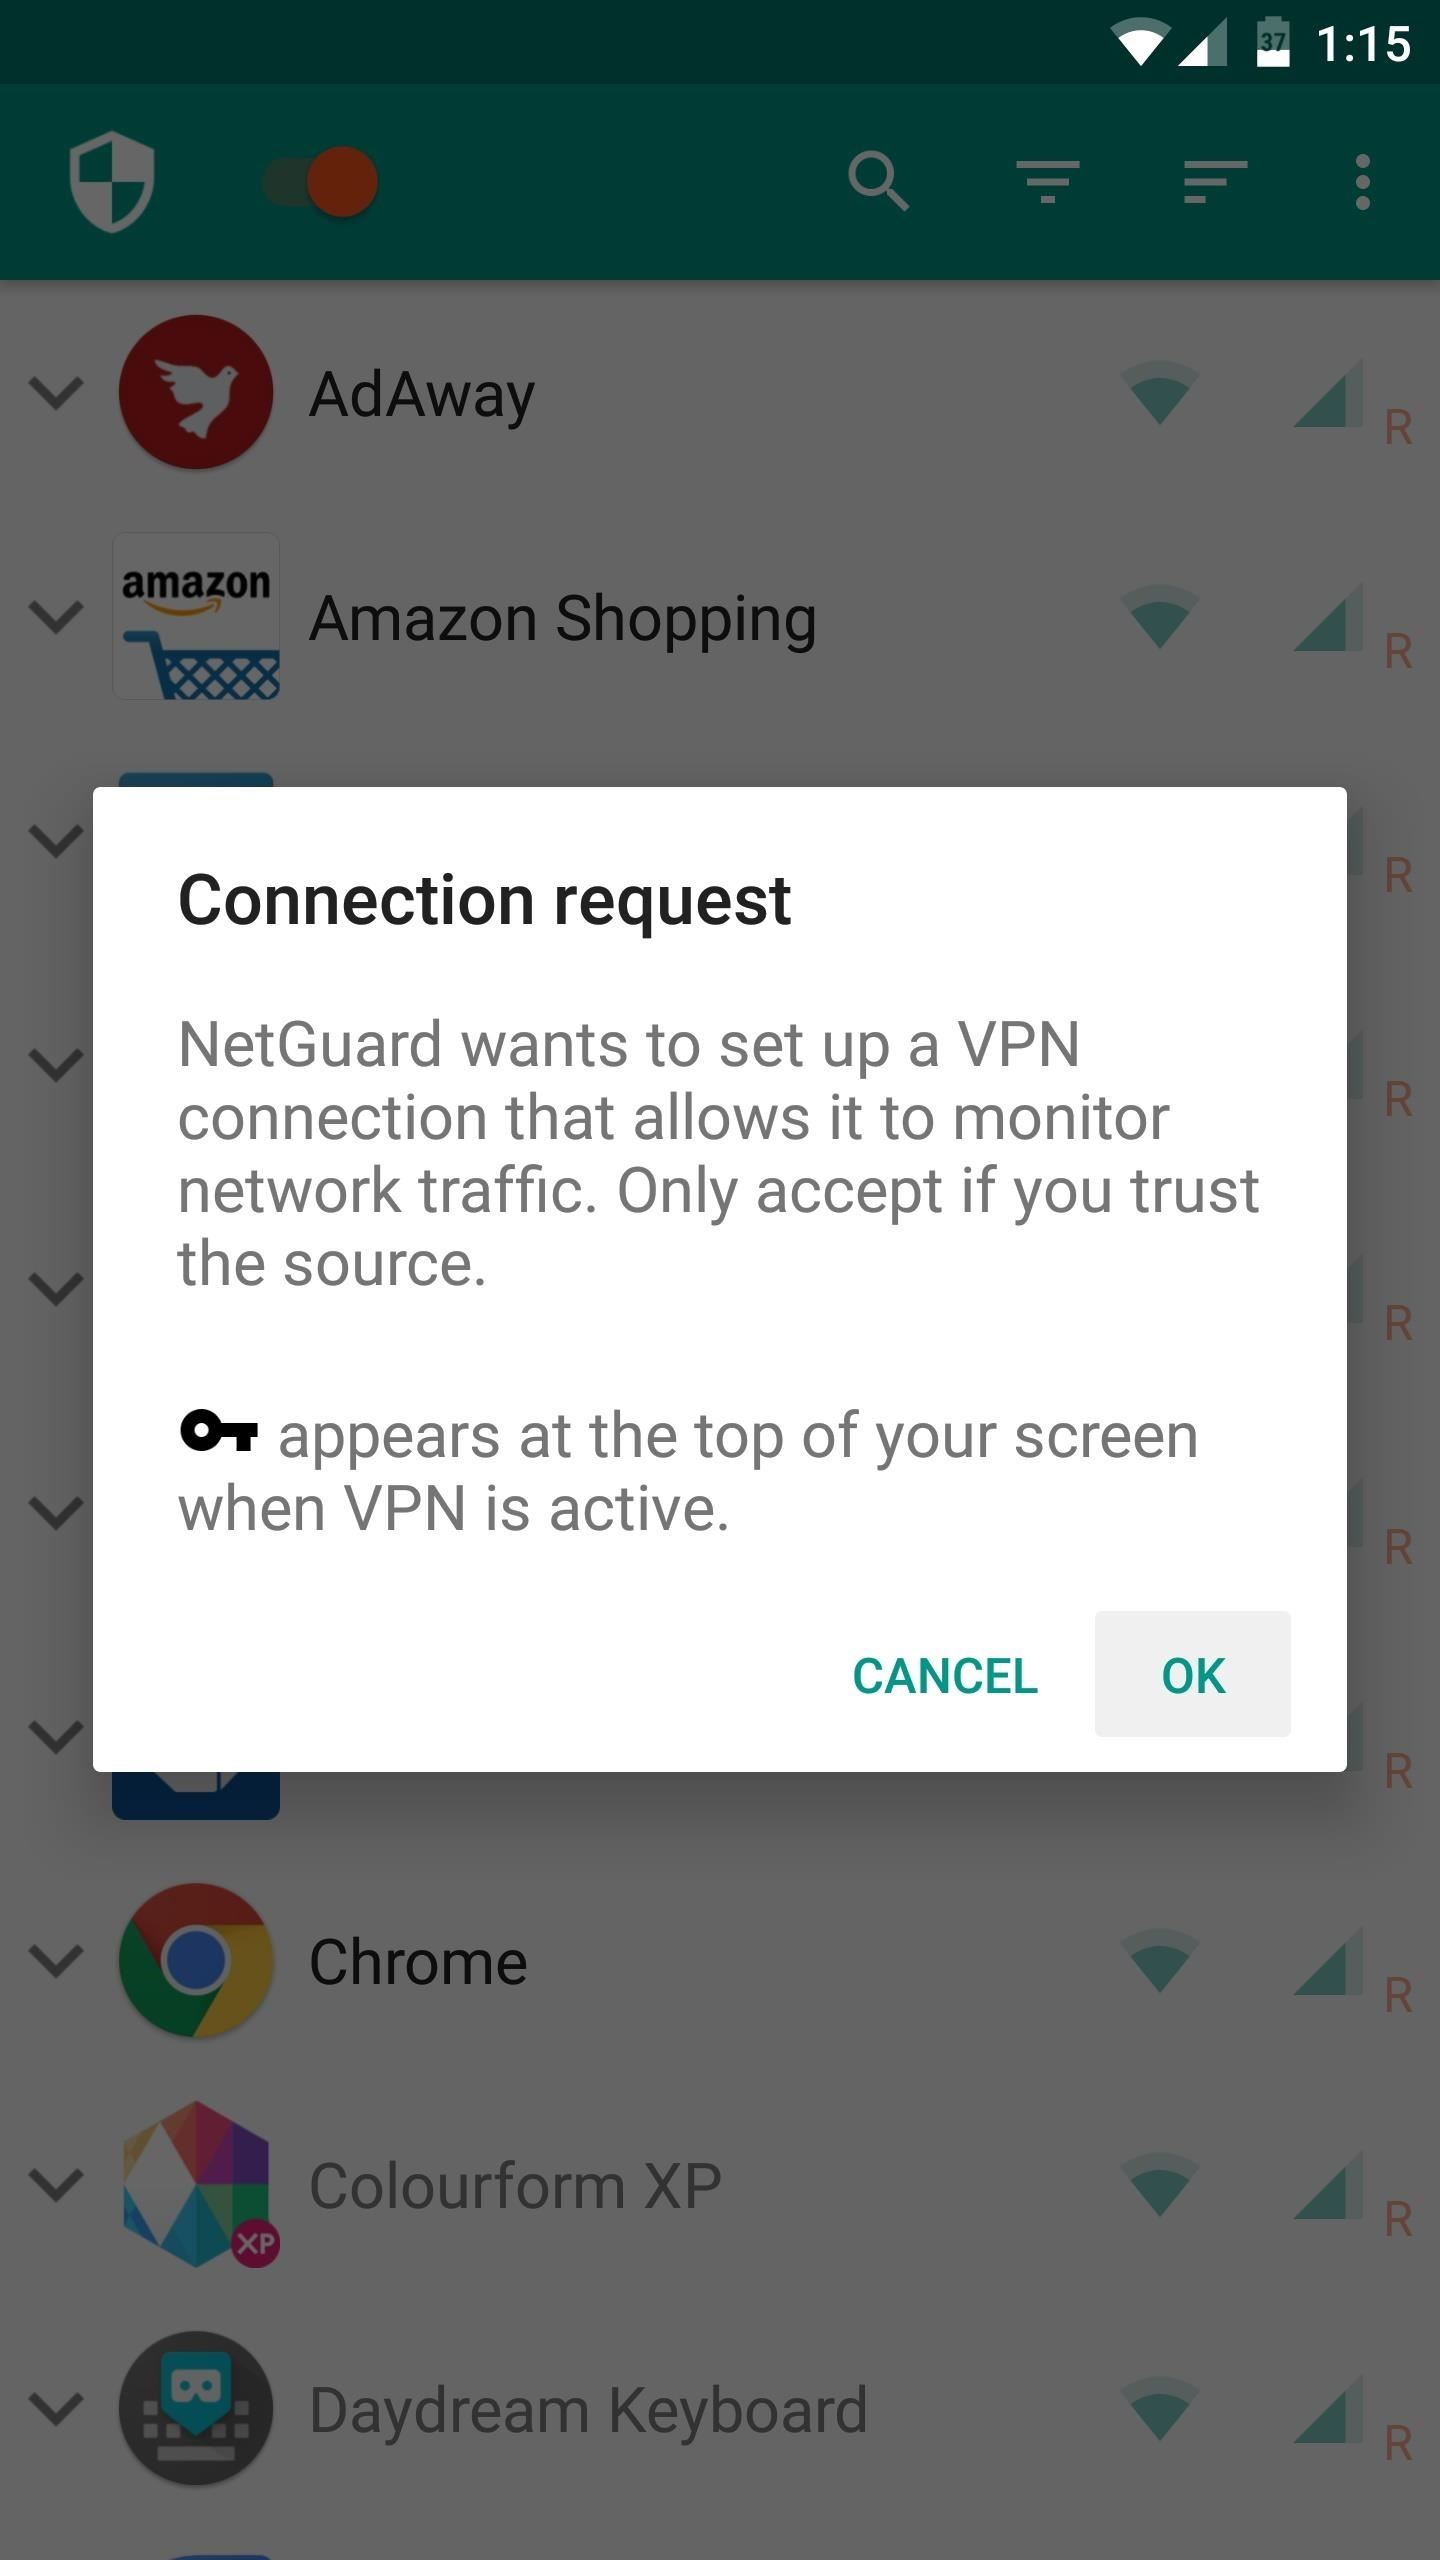 Enable NetGuard's Hidden Ad-Blocking Feature on Android